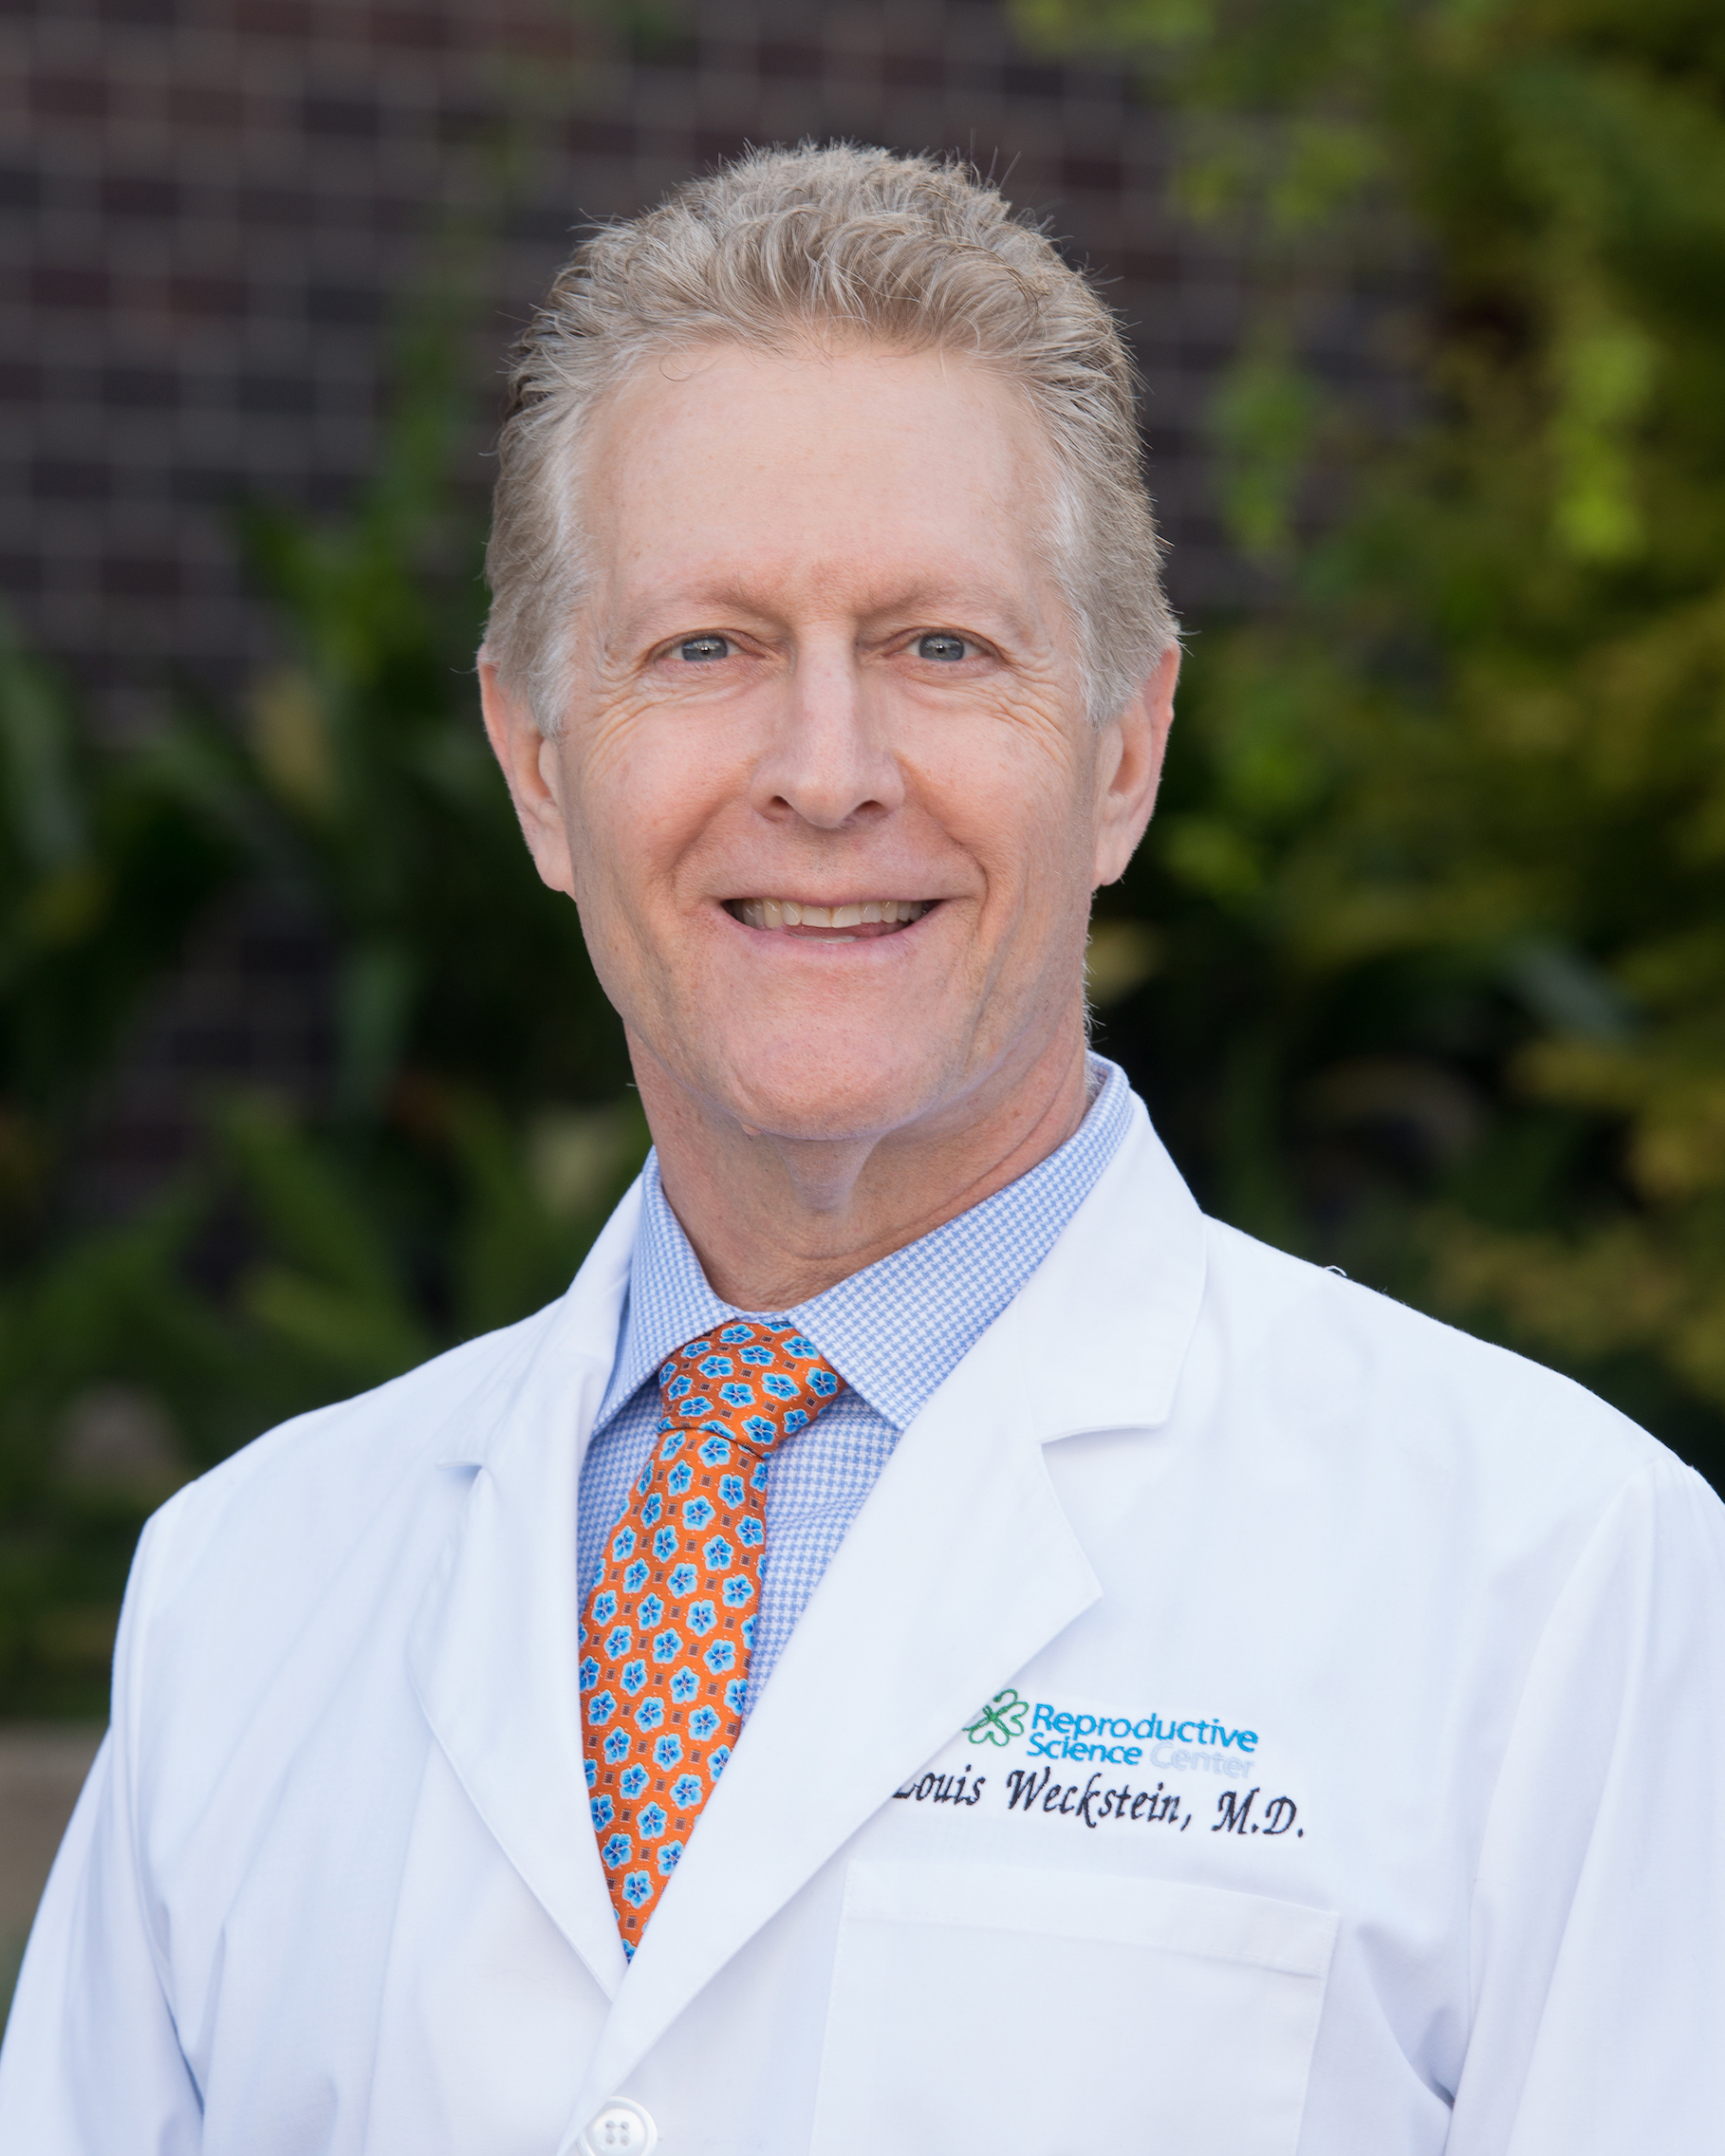 Dr. Louis Weckstein | Reproductive Science Center of the San Francisco Bay Area Fertility Clinic